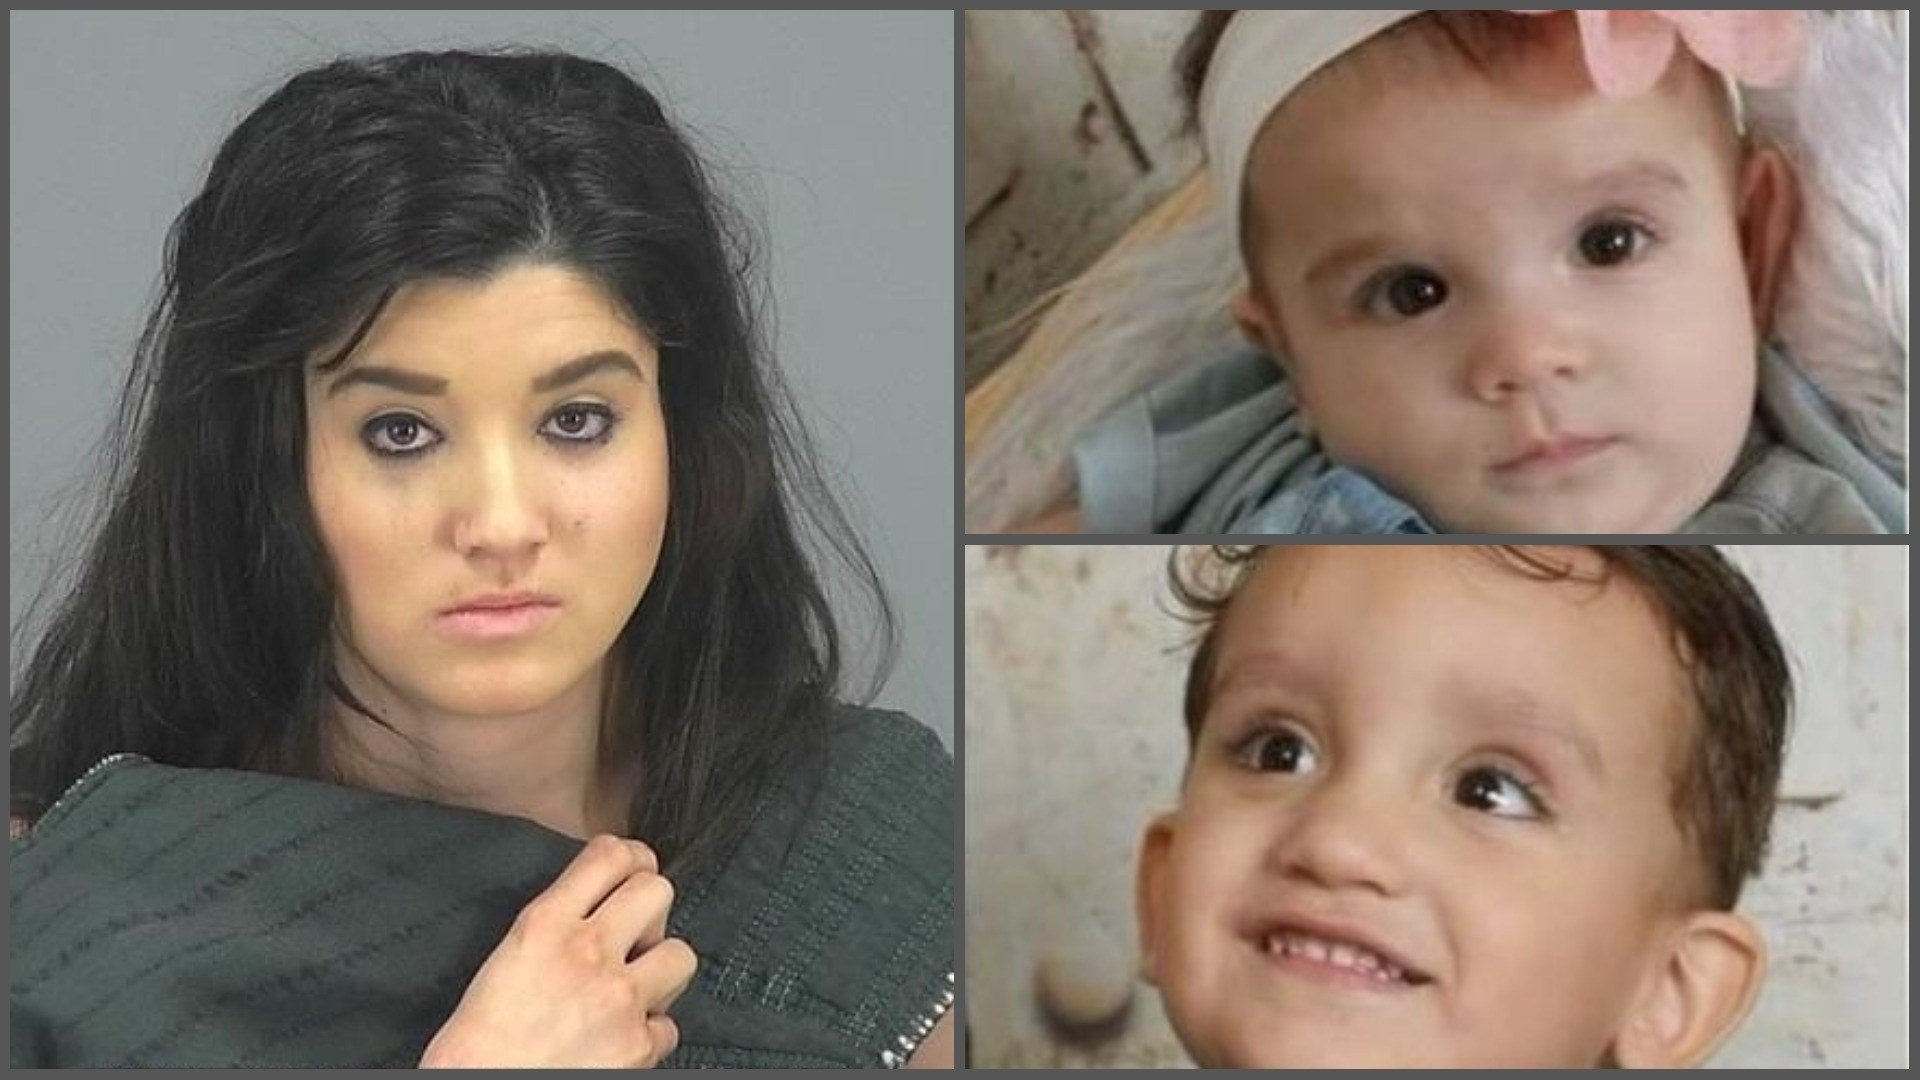 Brittany Velasquez is facing murder charges in the deaths of her children. (Source: Pinal County Sheriff's Office and GoFundMe)